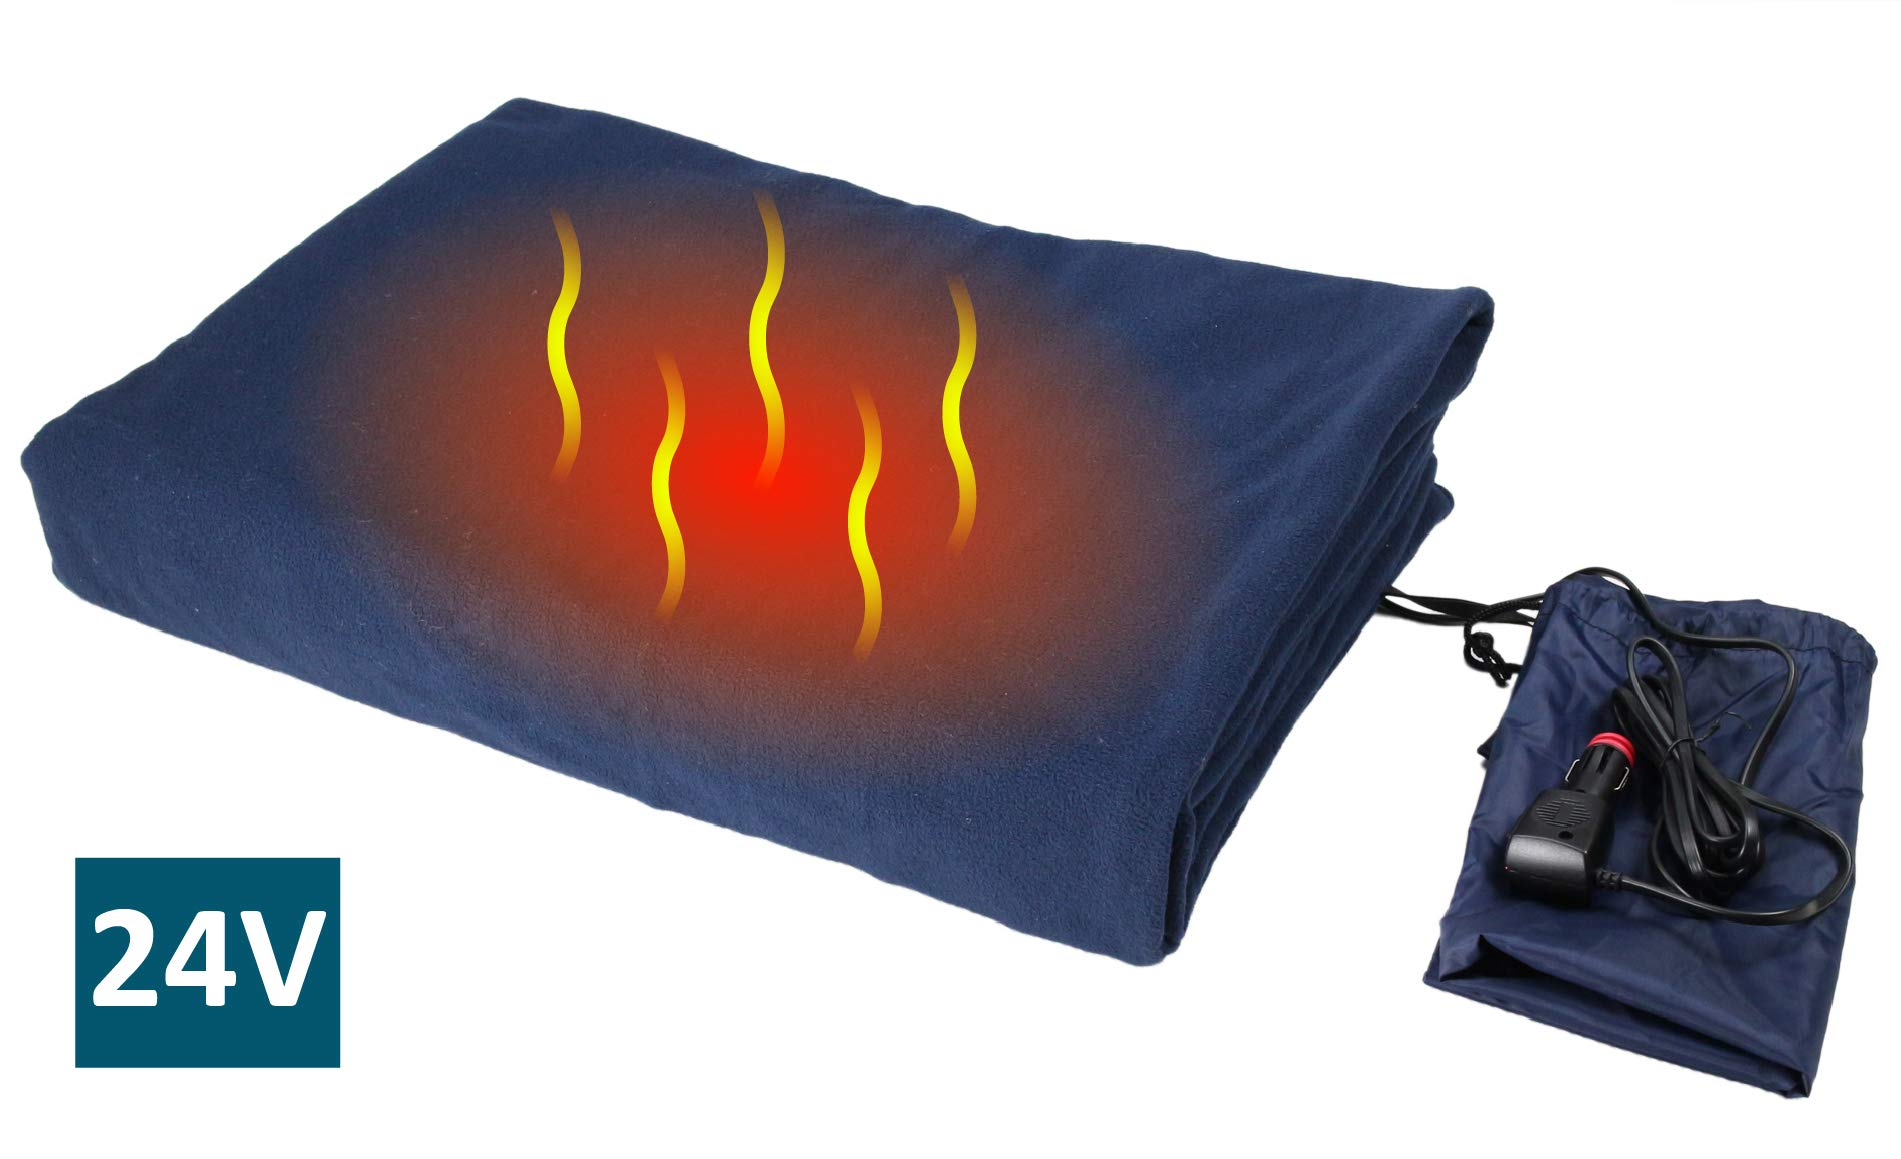 ObboMed SH-4214 Deluxe Electric 24V 60W Luxurious Comfy Polar Fleece Heated Travel Blanket, Winter AC Accessory Essential, with Premium Cigarette Lighter Plug for Truck, Van, Boat, Size 61'' x 41.3''